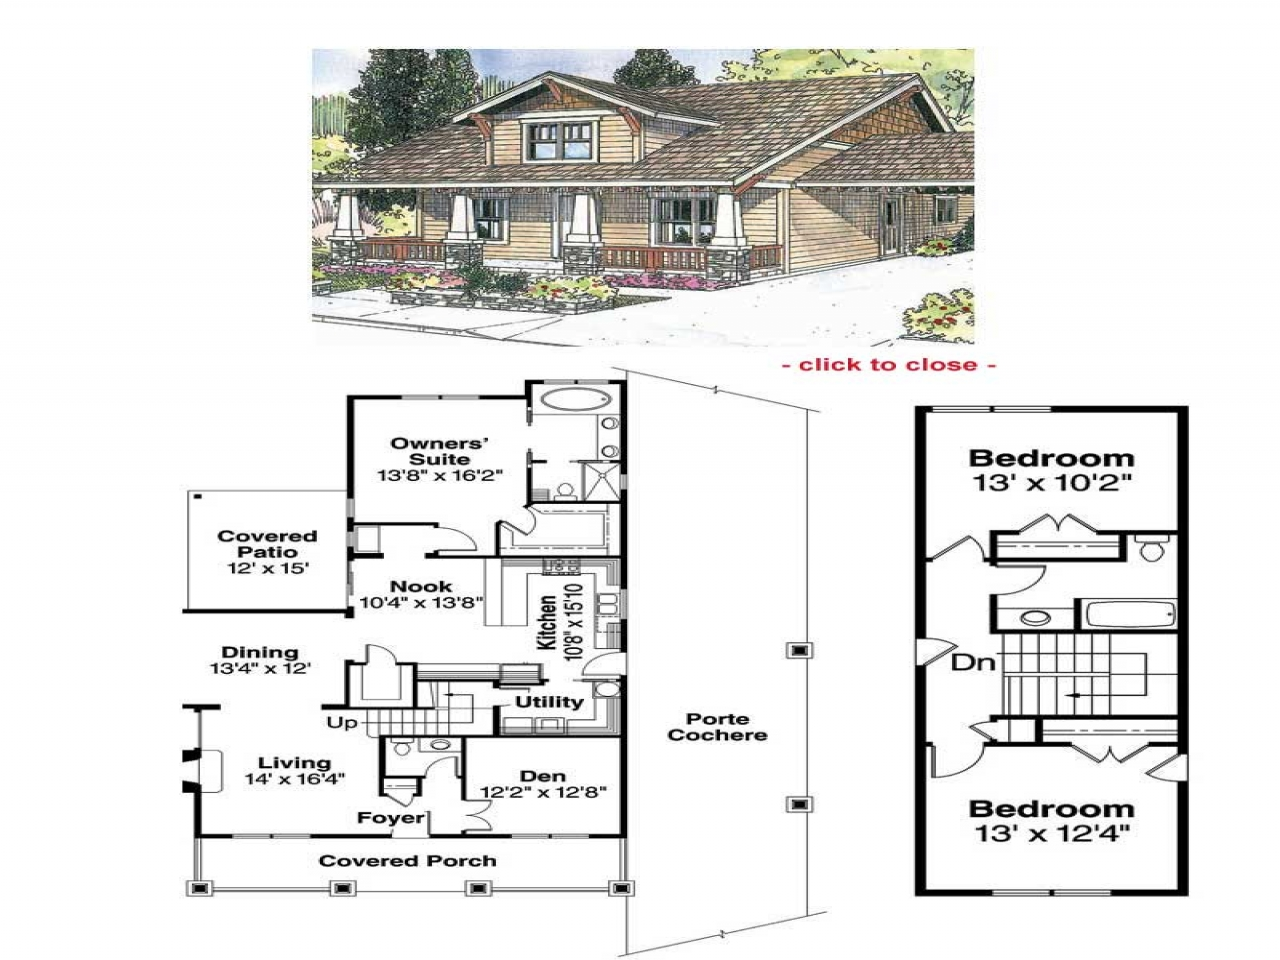 Craftsman bungalow plans find house plans vintage for Find house plans